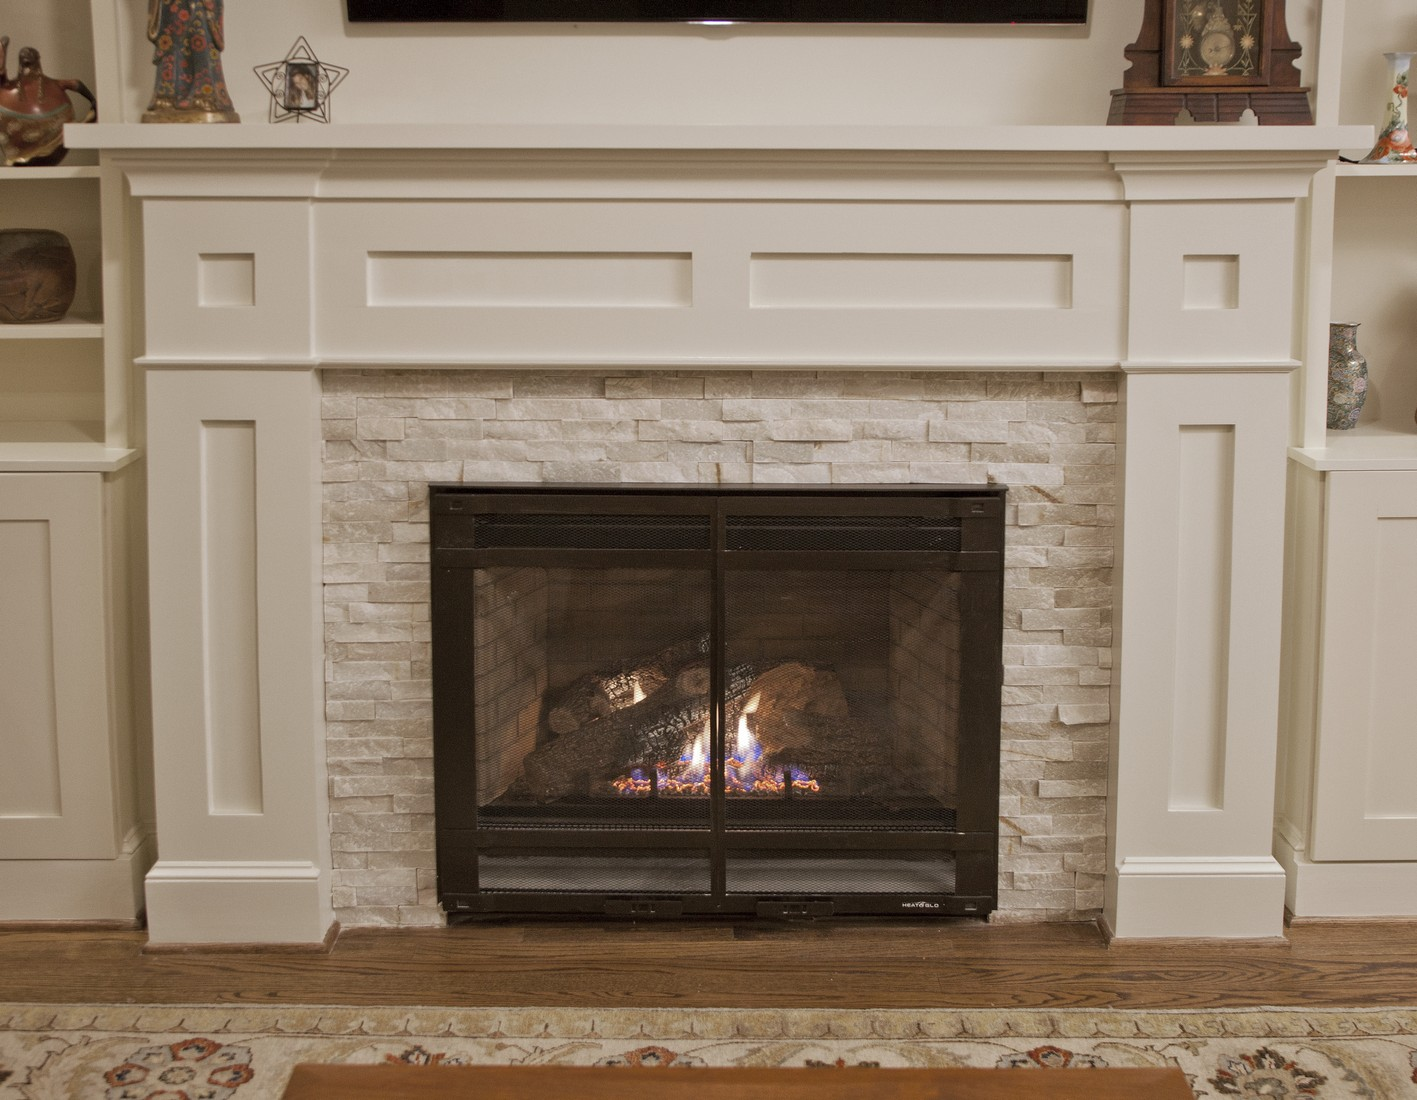 How To Operate A Fireplace Vent Free Gas Fireplaces Are They Safe Homeadvisor